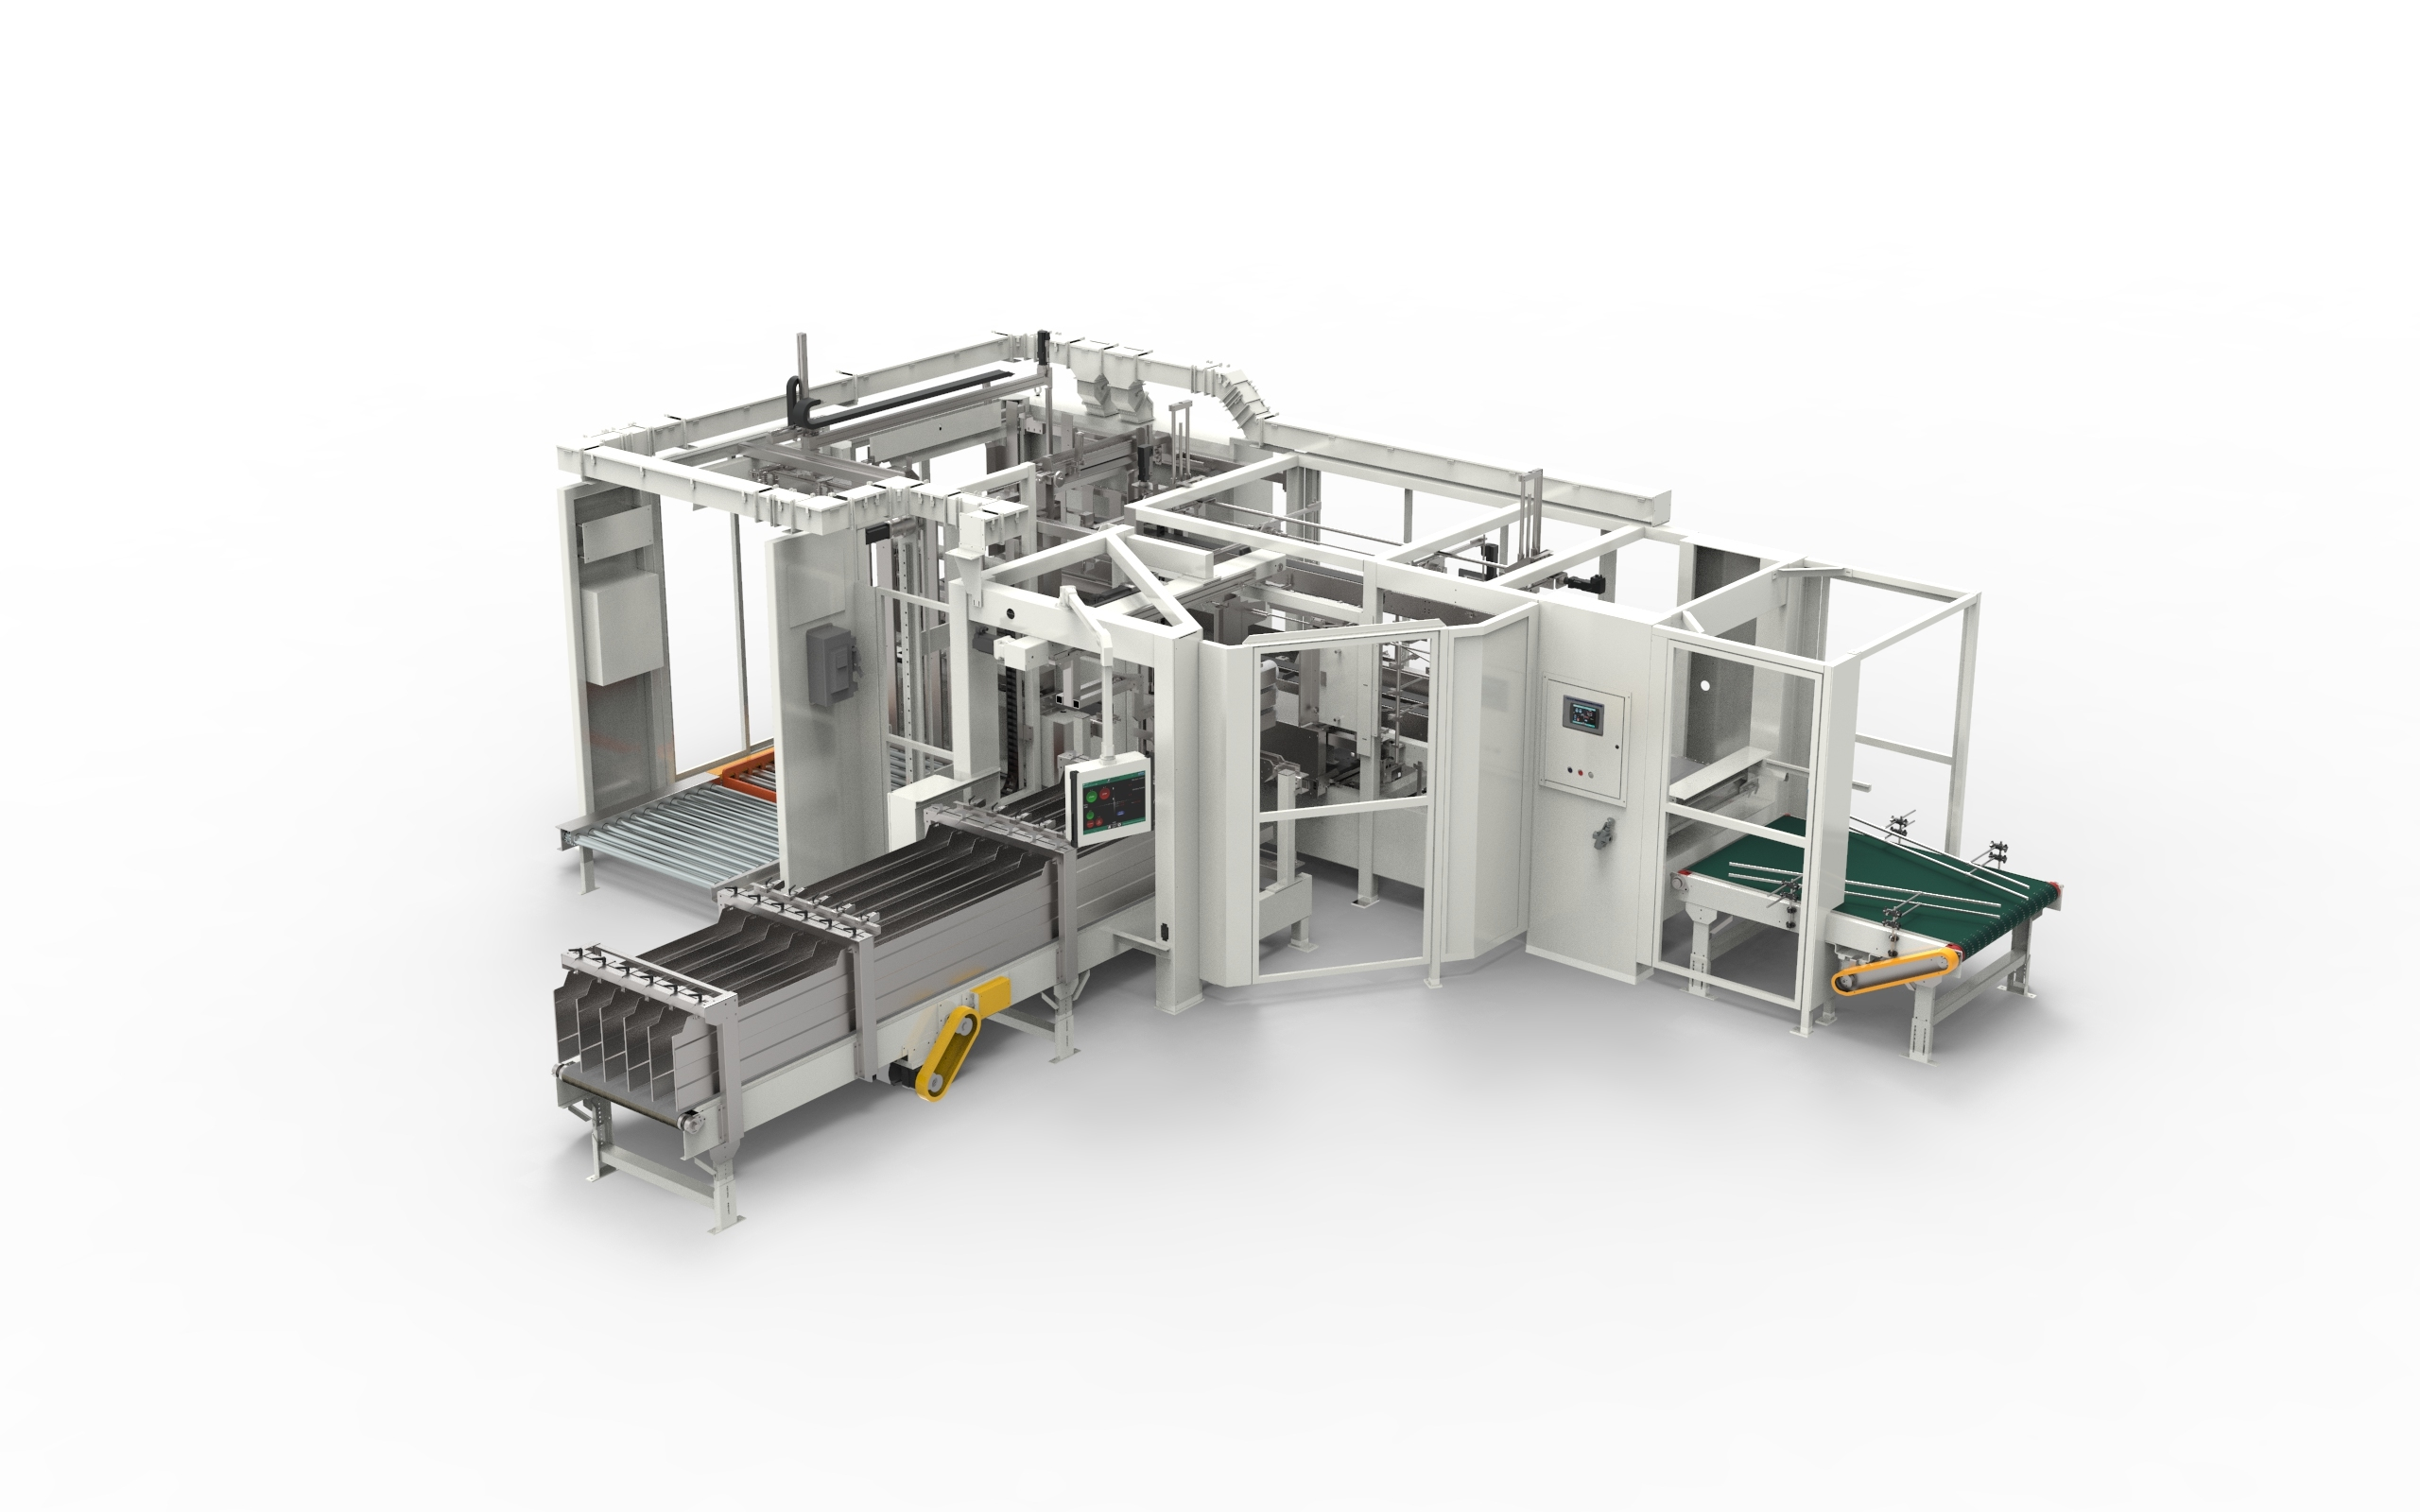 3600C Compact Case Packer - Case & Tray Packing Equipment